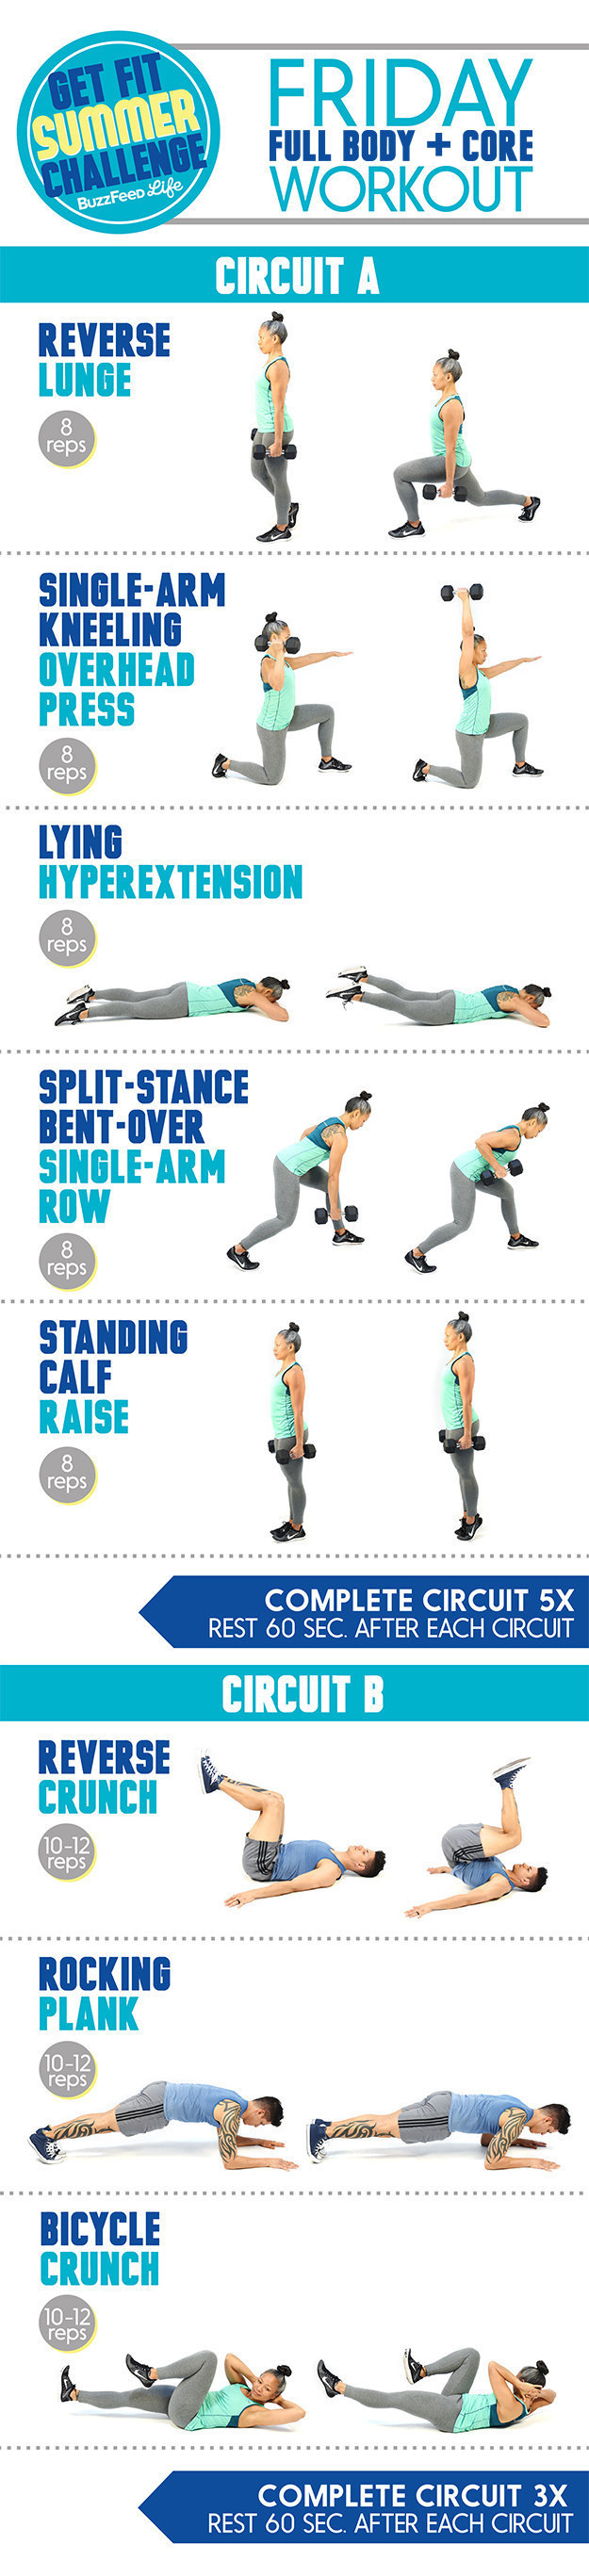 Here s The Friday Workout For The Get Fit Summer Challenge. Here s The Friday Workout For The Get Fit Summer Challenge